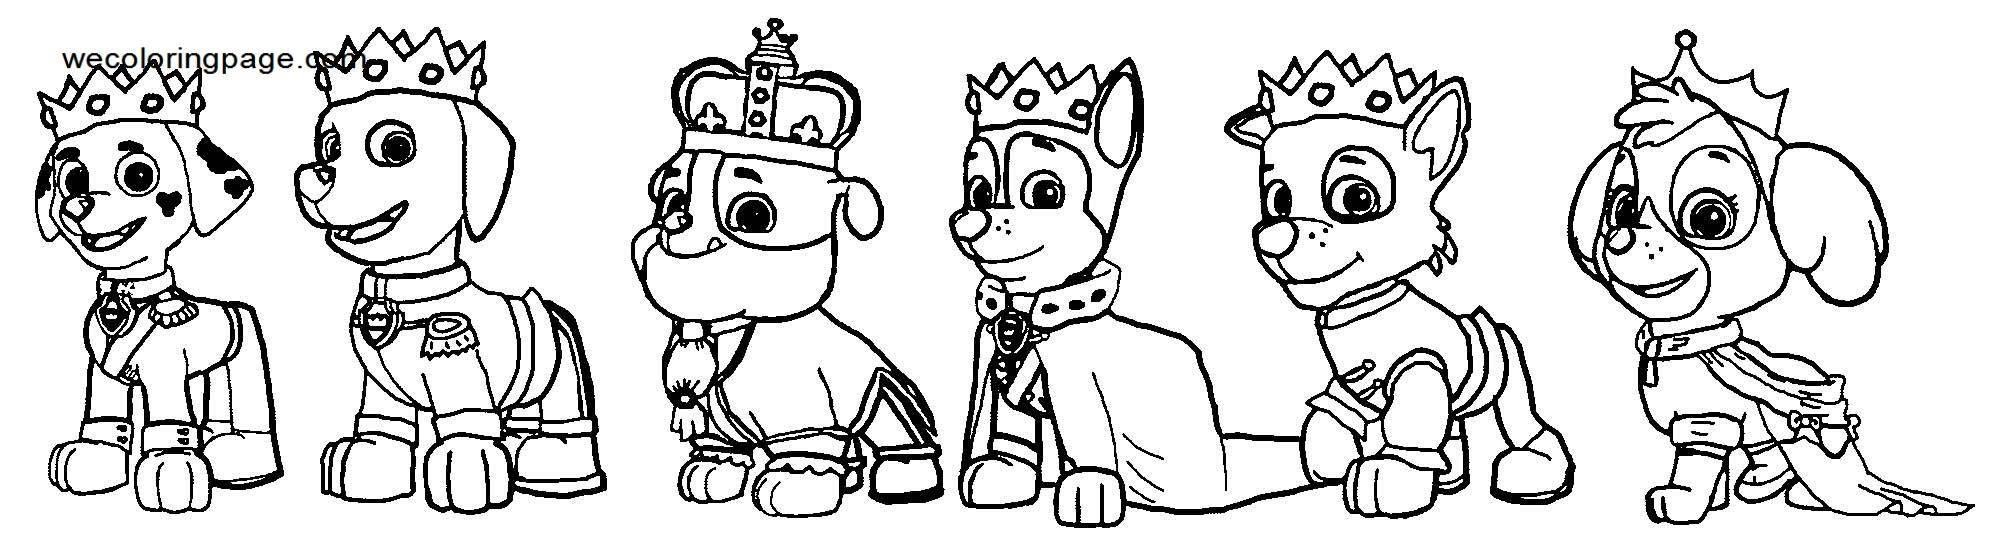 Fairytale Paw Patrol Matthew Coloring Page